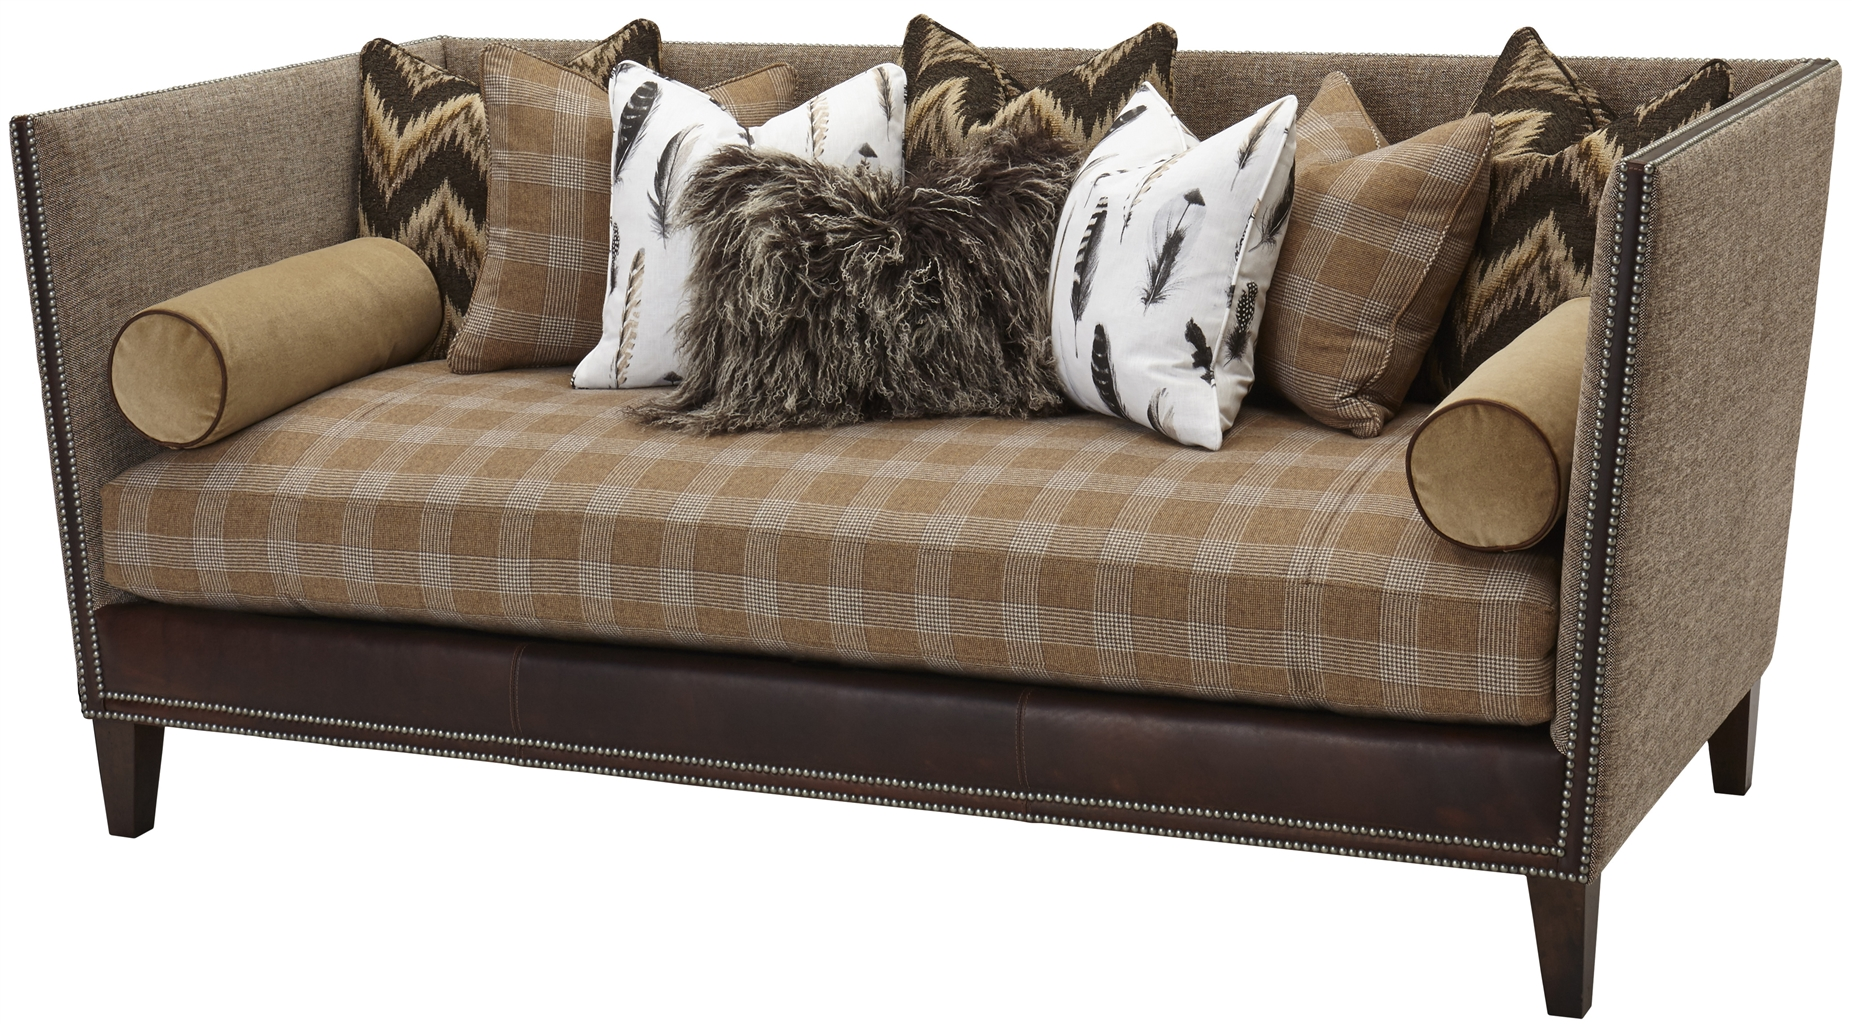 Upholstered High Back Sofa